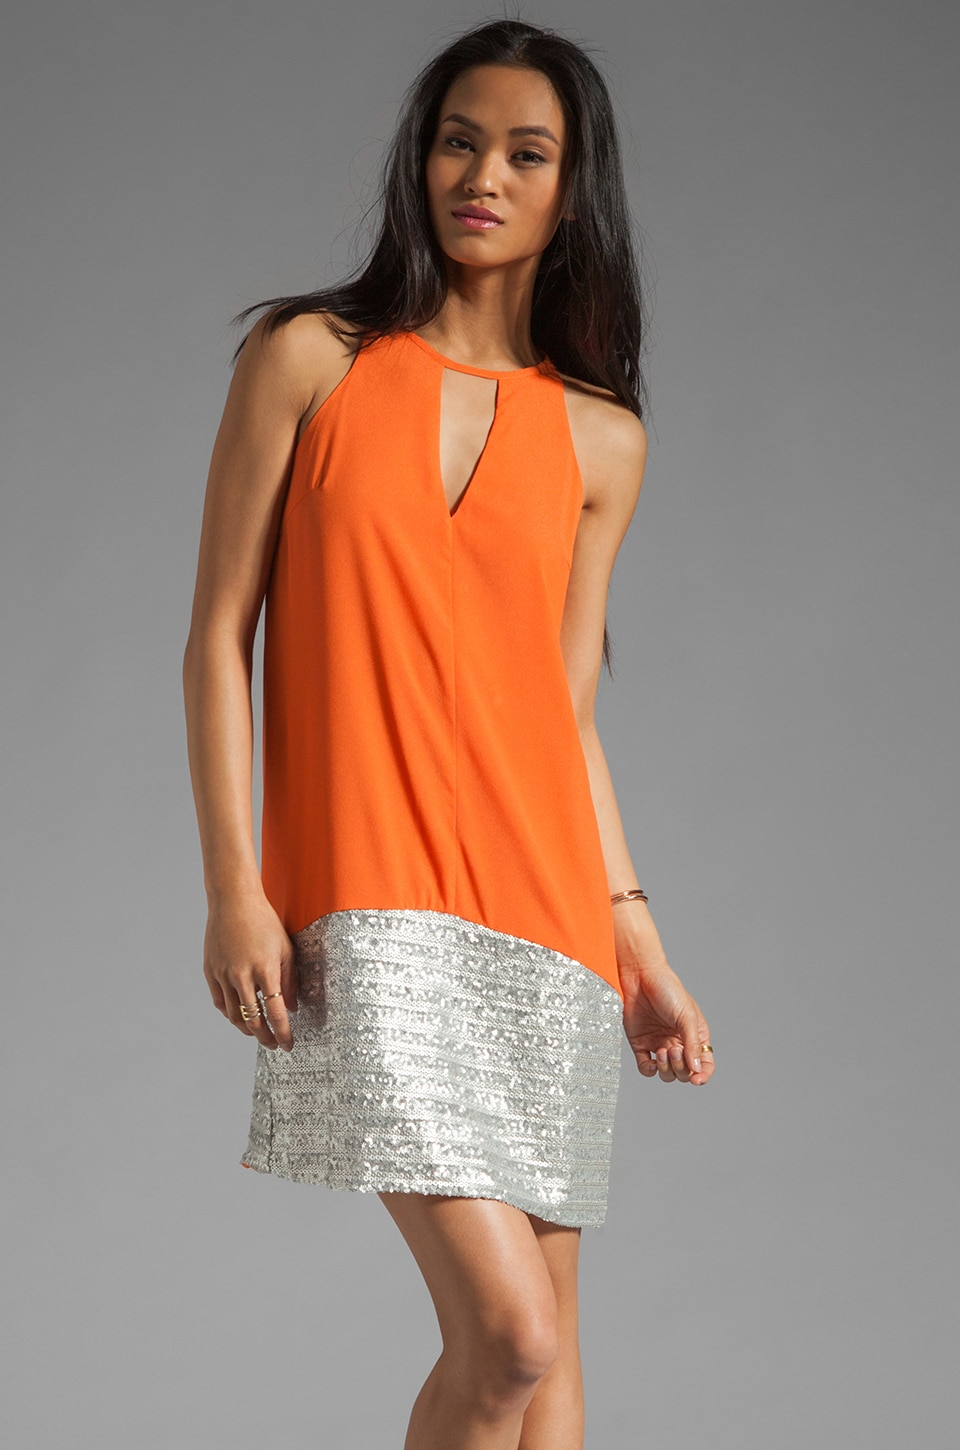 MM Couture by Miss Me Sleeveless Dress With Bottom Sequin in Orange